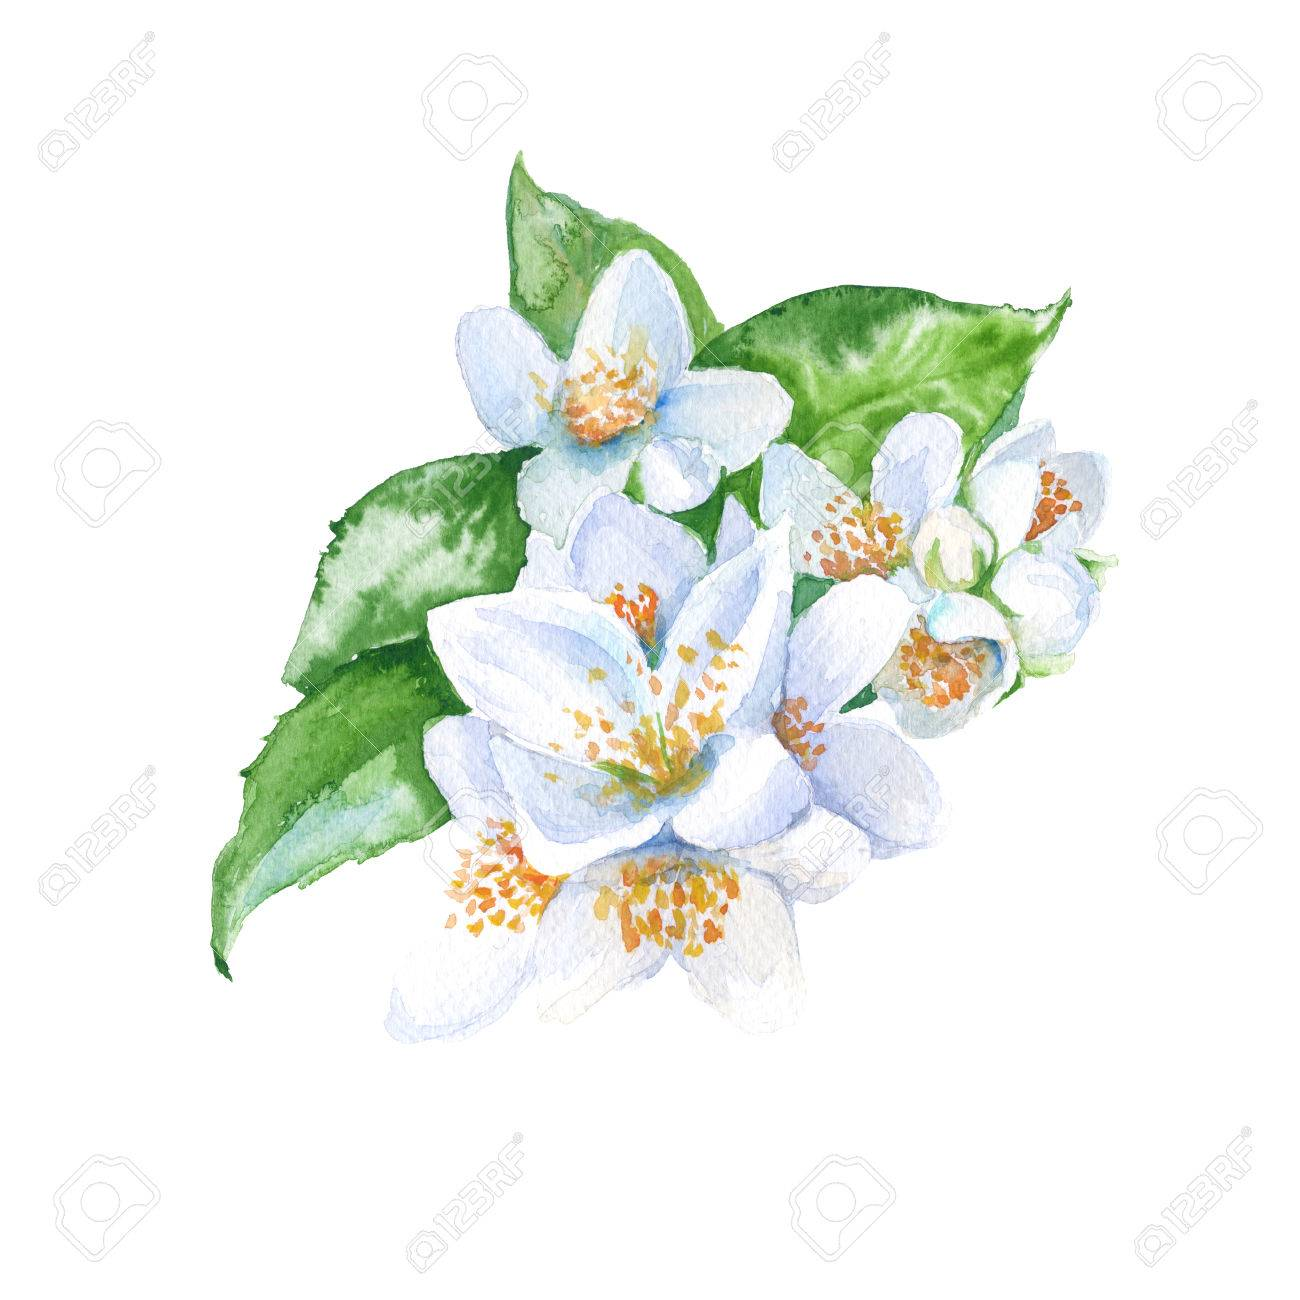 Jasmine flowers branch with leaves isolated watercolor jasmine flowers branch with leaves isolated watercolor illustration stock illustration 60372103 izmirmasajfo Gallery